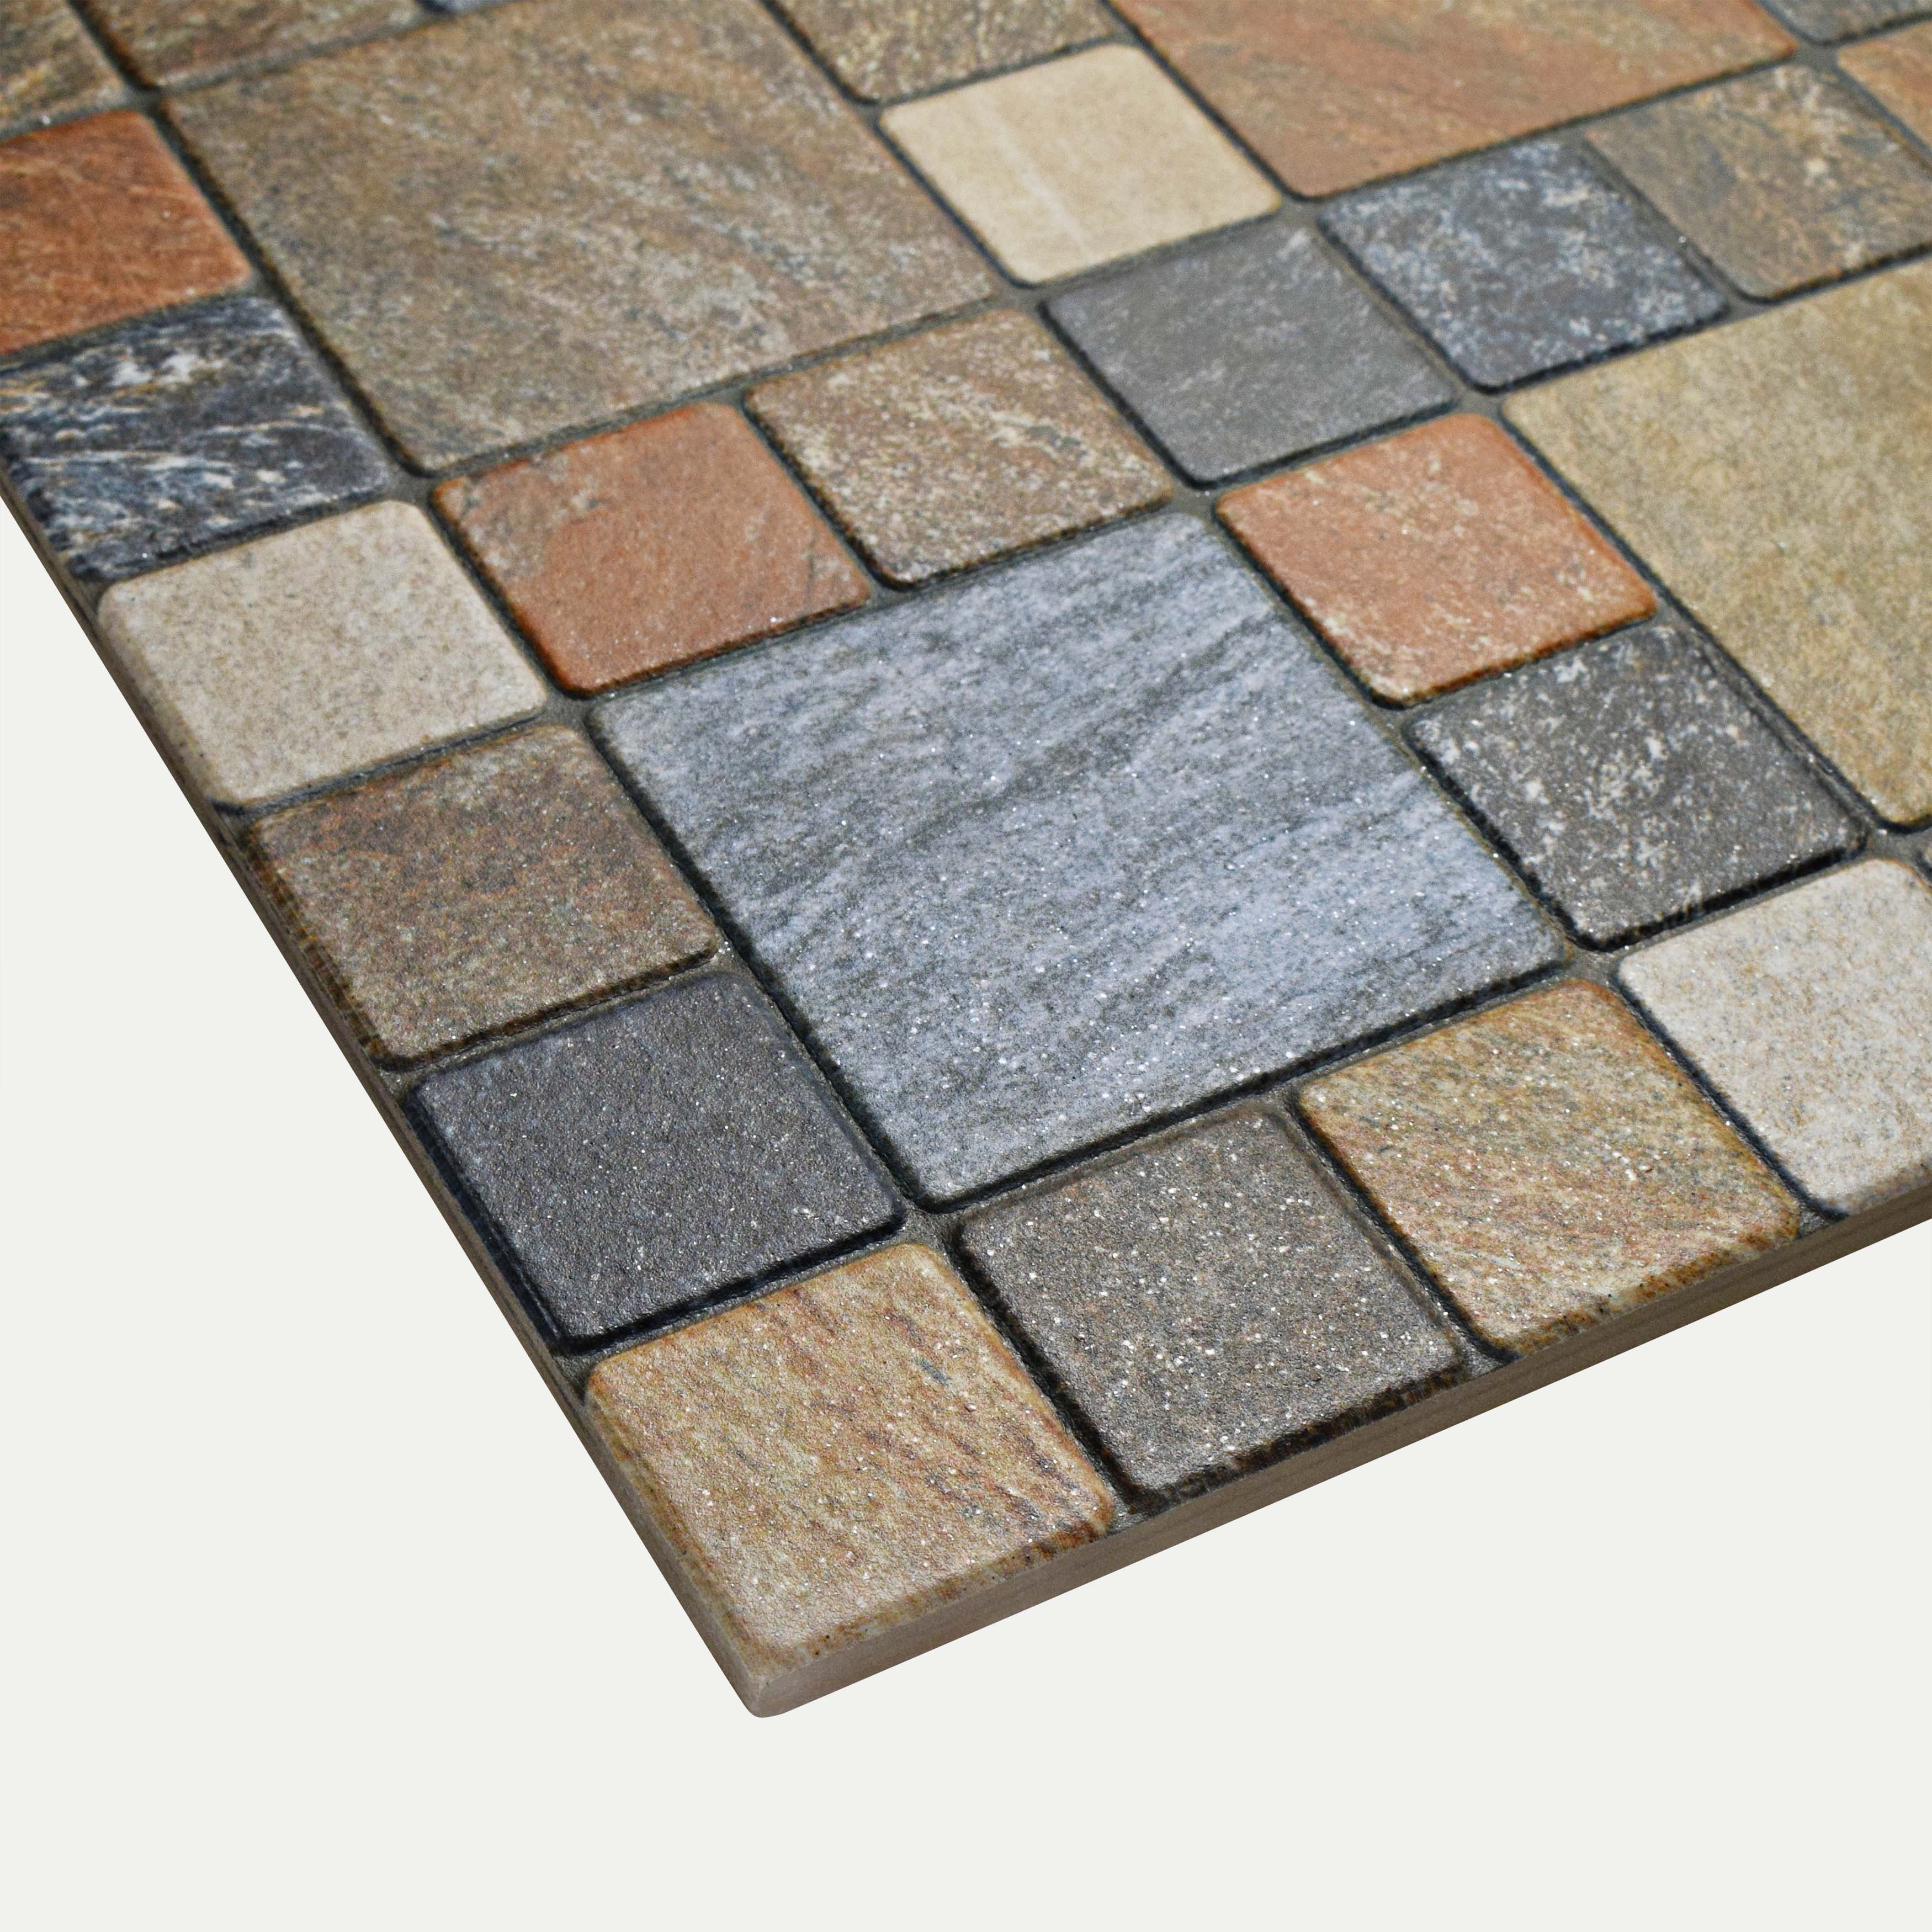 Somertile 12 25x12 25 Inch Folio Por Rustico Porcelain Floor And Wall Tile 15 Tiles 16 3 Sqft Free Shipping Today 9724122